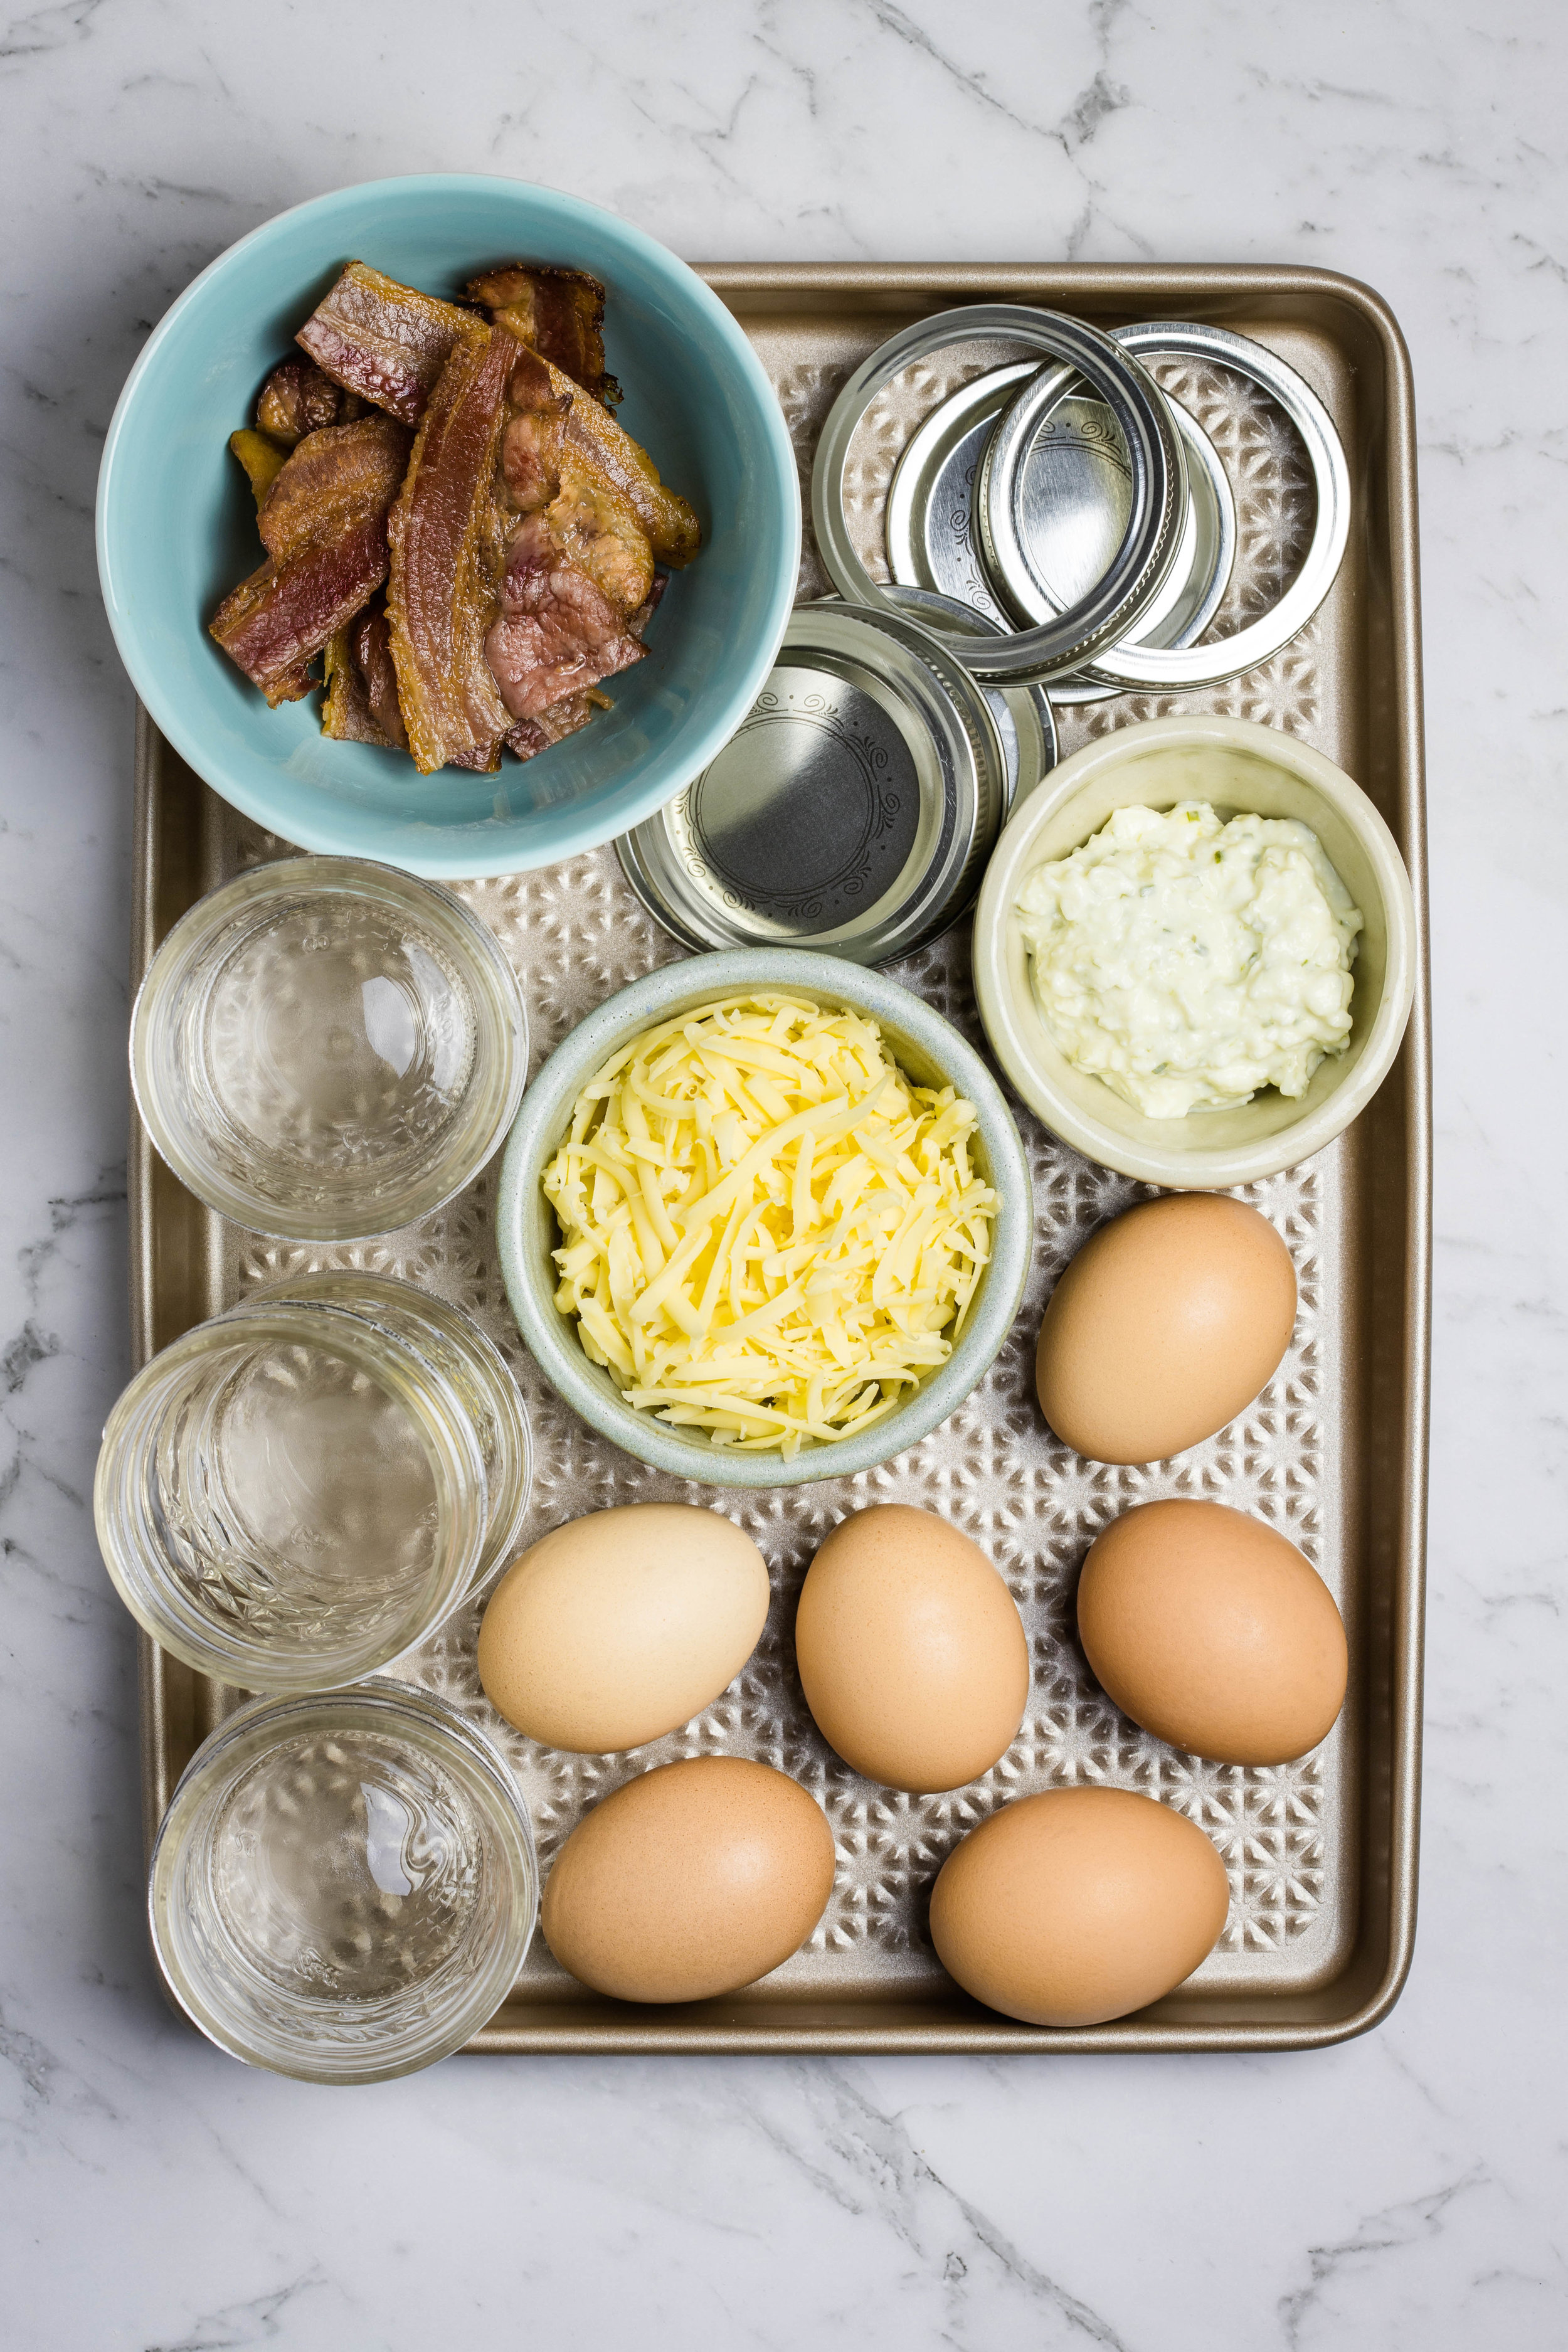 Alternate ingredients for sous vide egg bites, eggs, cheese, bacon and cottage cheese with herbs